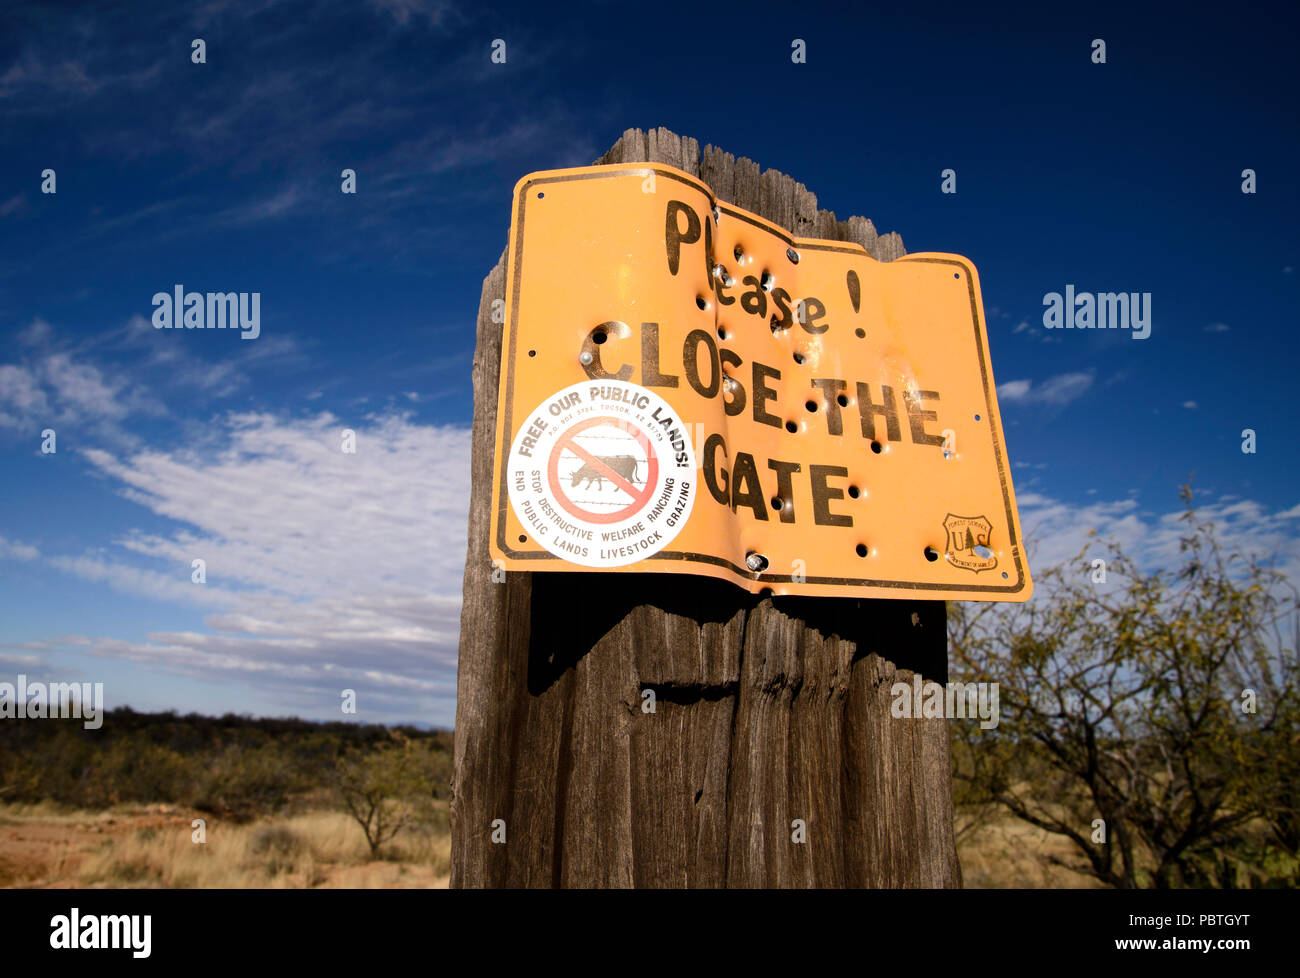 Signs opposing livestock grazing on public lands where cattle graze are posted by Free Our Public Lands! along the road to Elephant Head, Coronado Nat Stock Photo